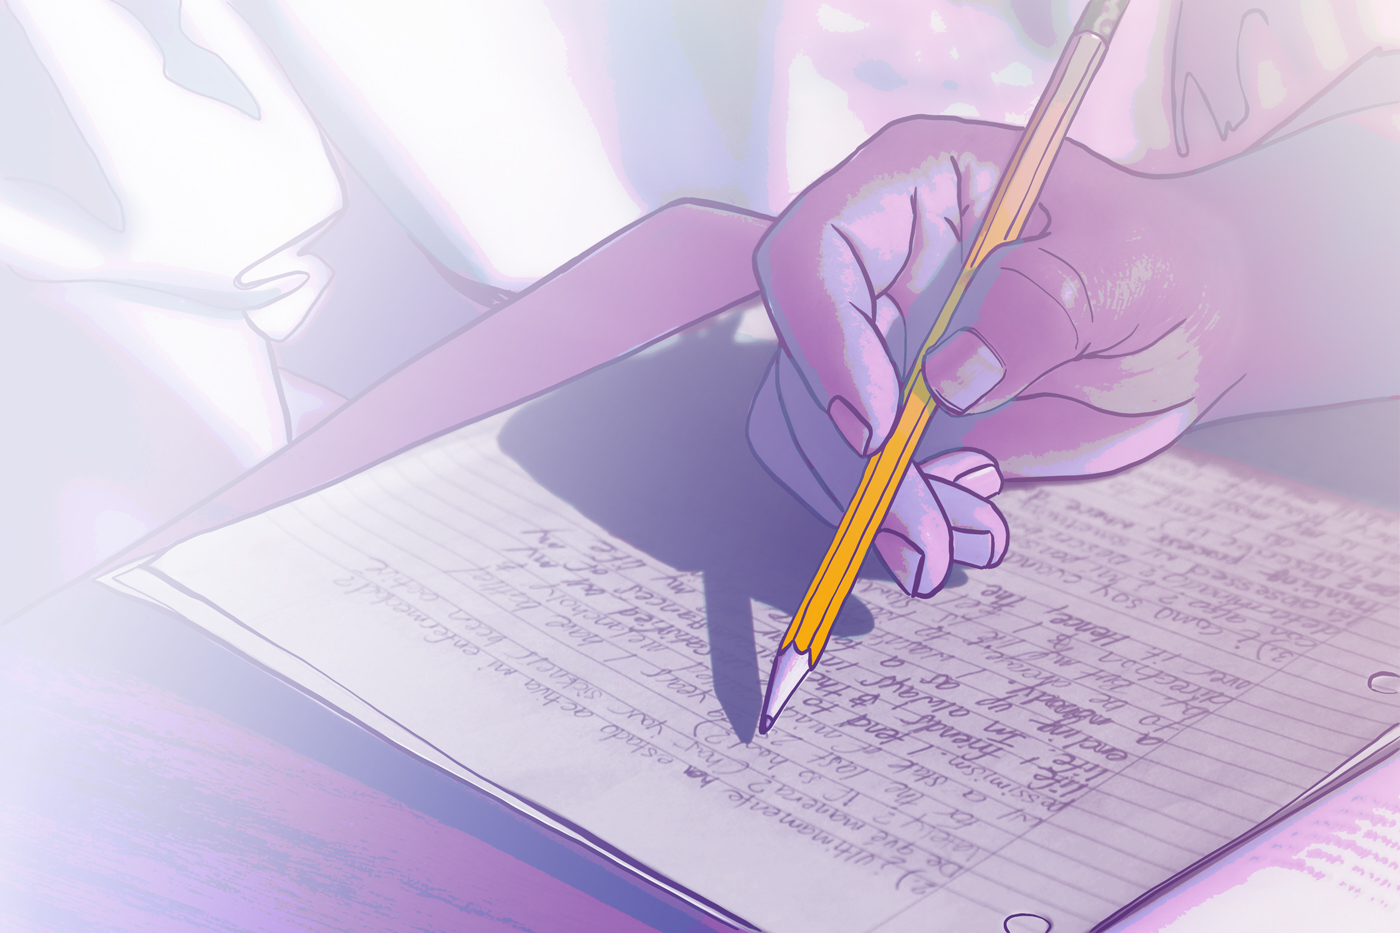 an abstract image depicts the hand of a student in prison writing a manuscript by hand